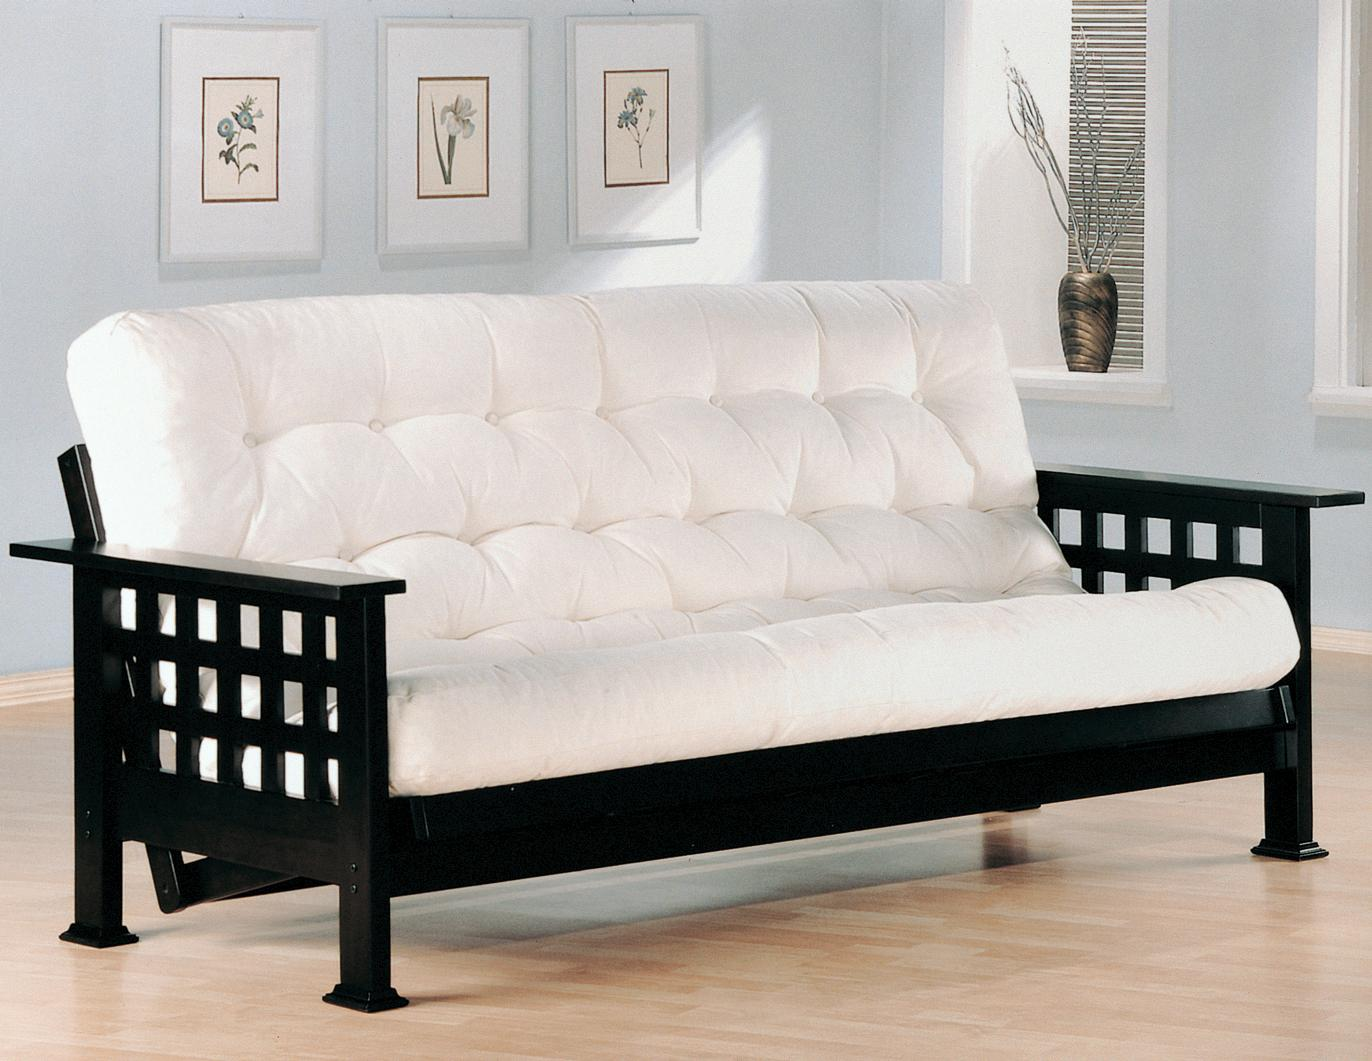 Awesome Wood Futon